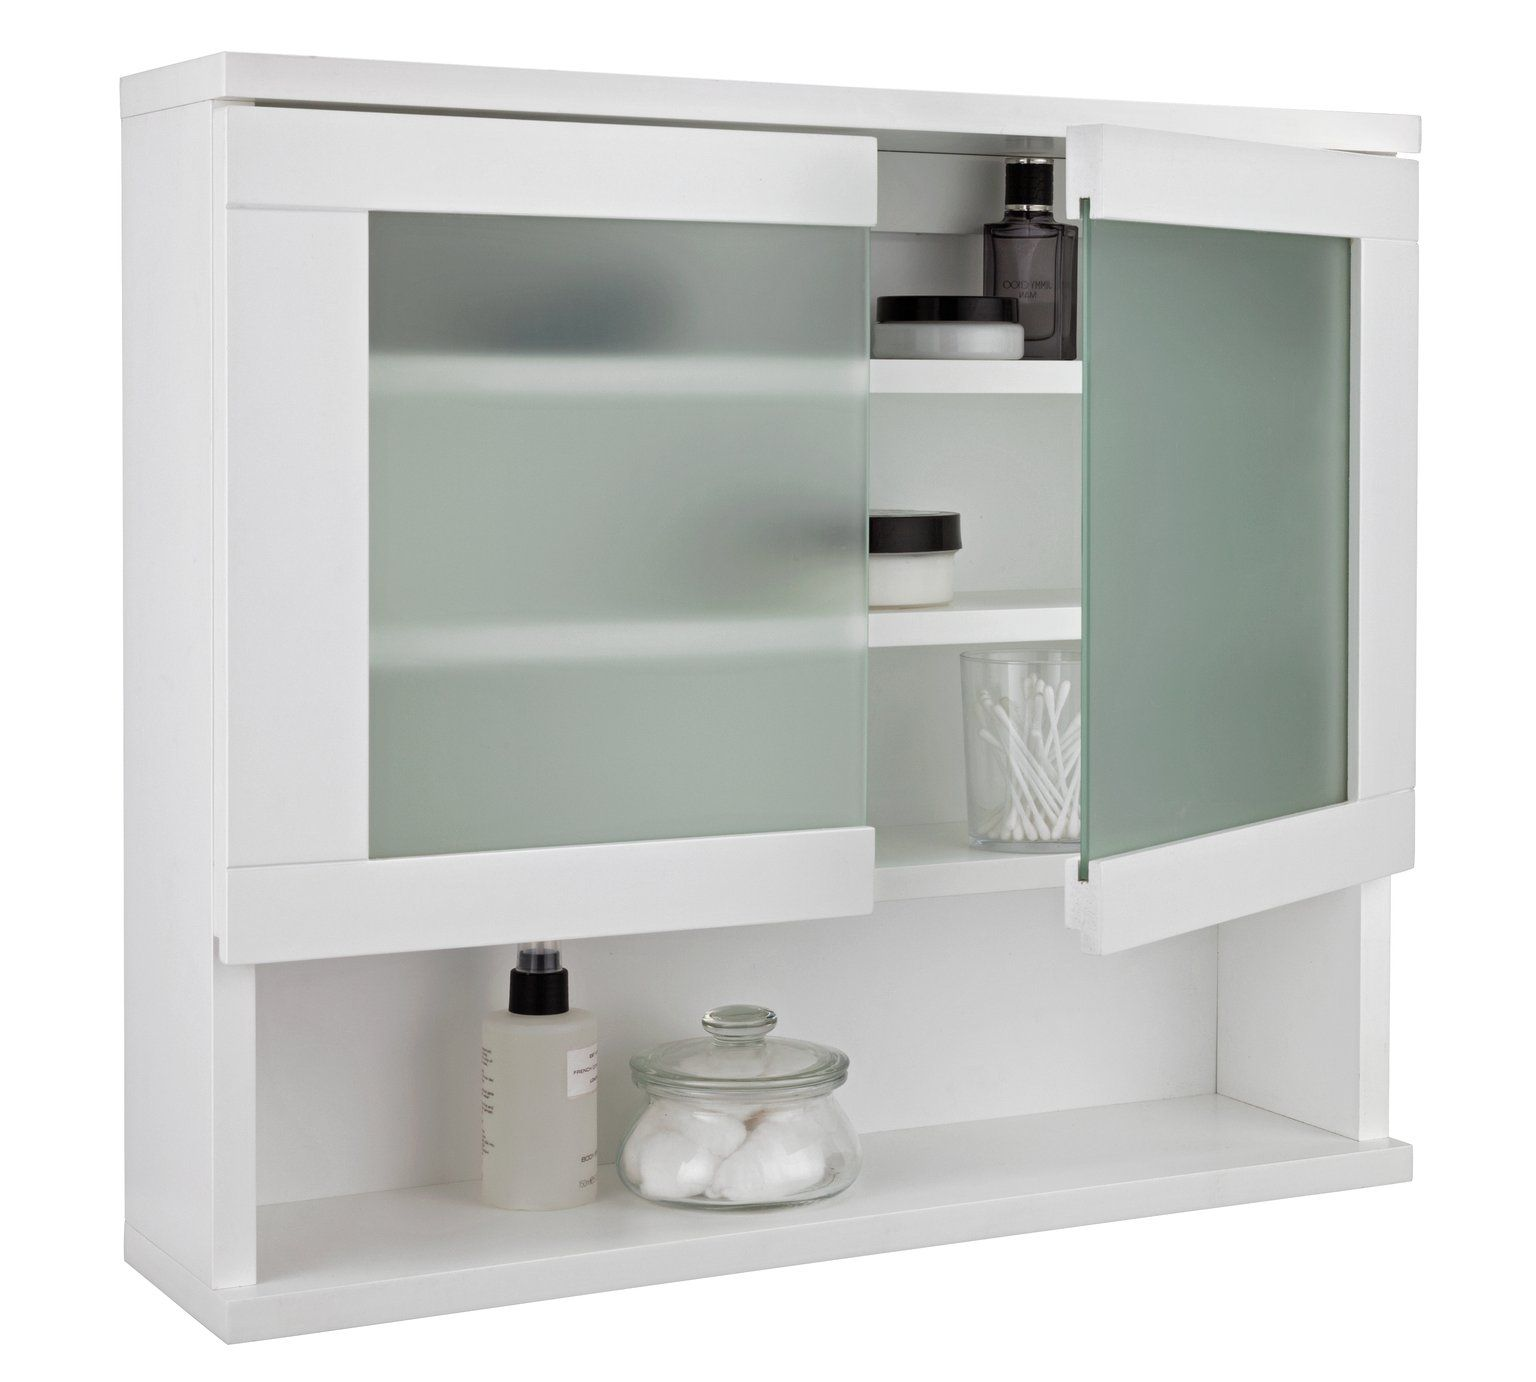 Buy Hygena Ice 2 Door Wall Cabinet White At Argos Thousands Of Products For Same Day Delivery 3 95 Or Fast Wall Cabinet Door Wall White Bathroom Cabinets